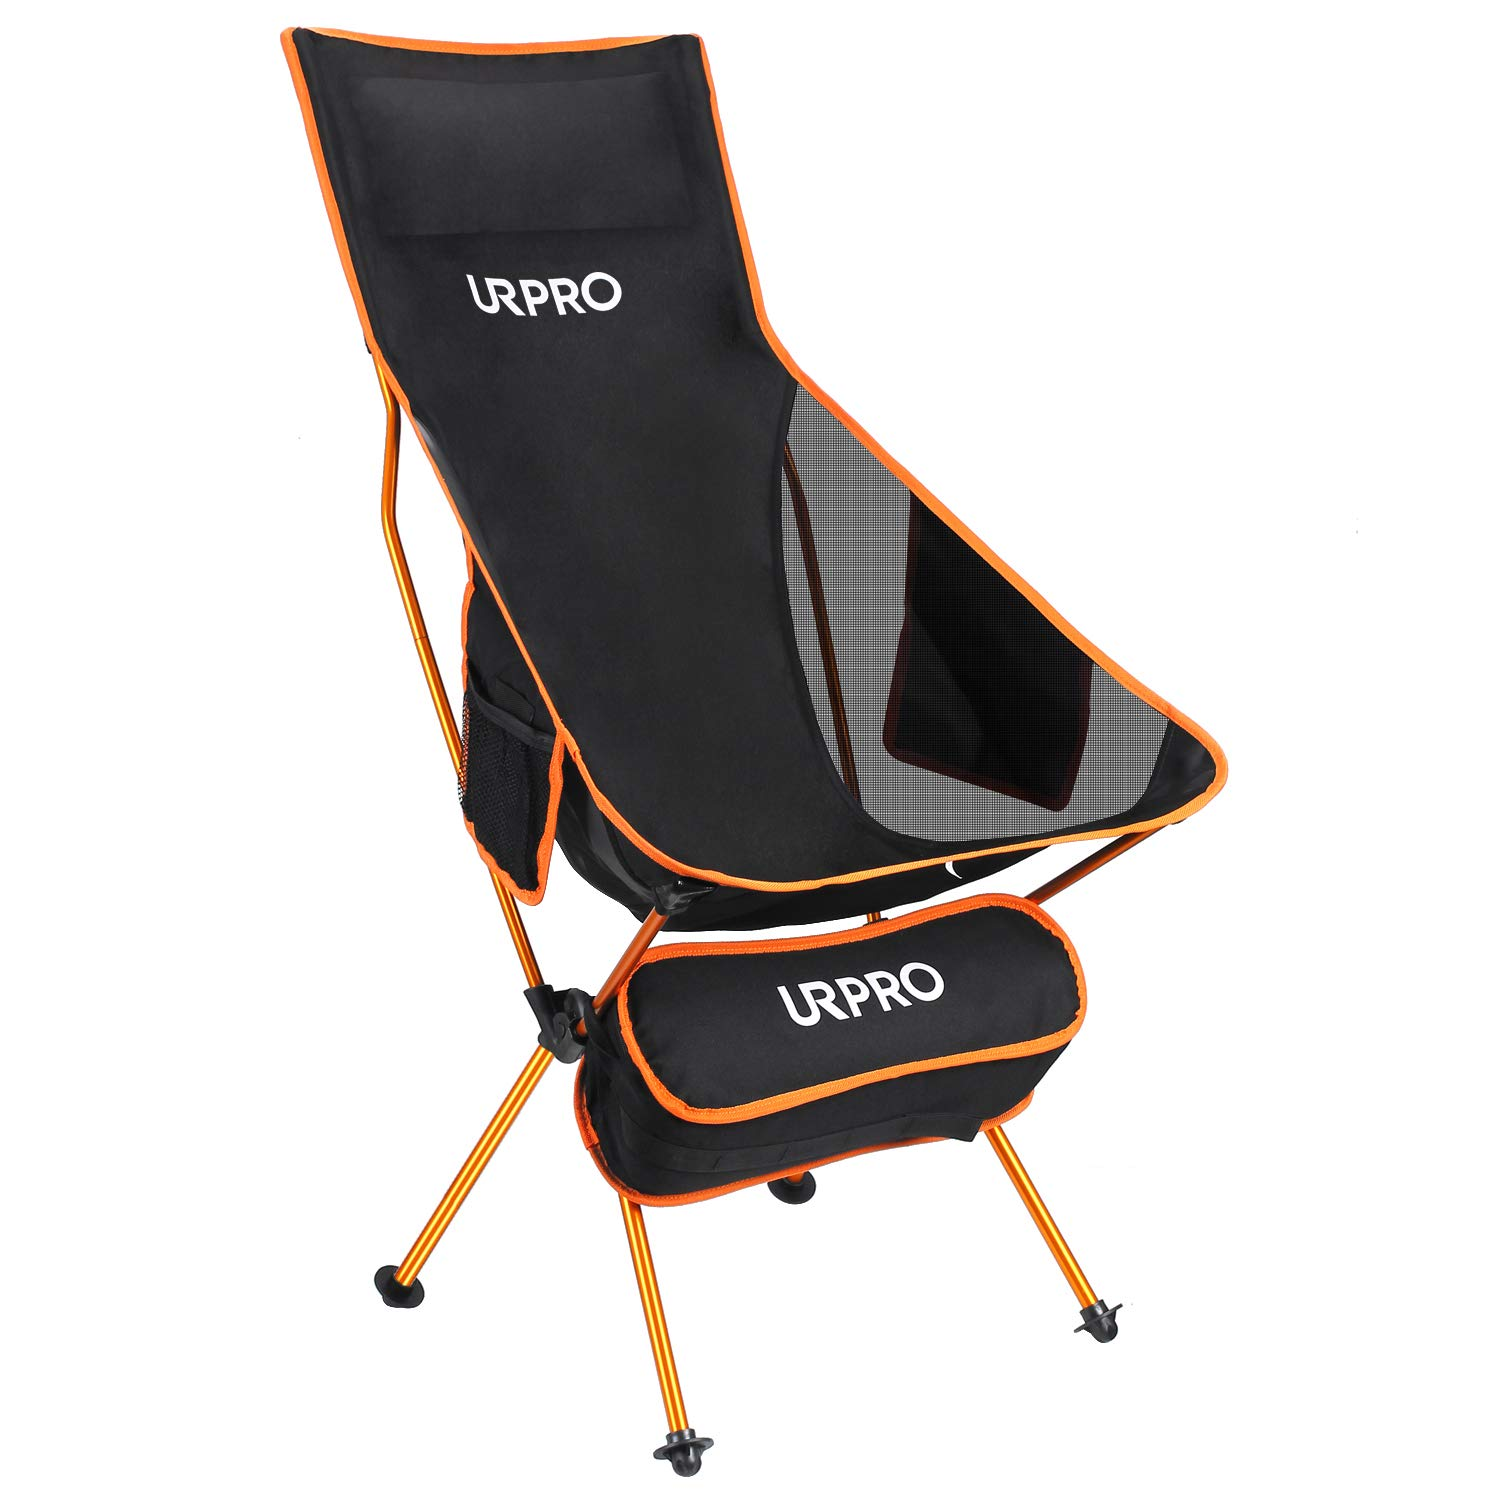 URPRO Upgraded Outdoor Camping Chair Portable Lightweight Folding Camp Chair with Headrest & Pocket High Back for Outdoor Backpacking Hiking Travel Picnic Fishing